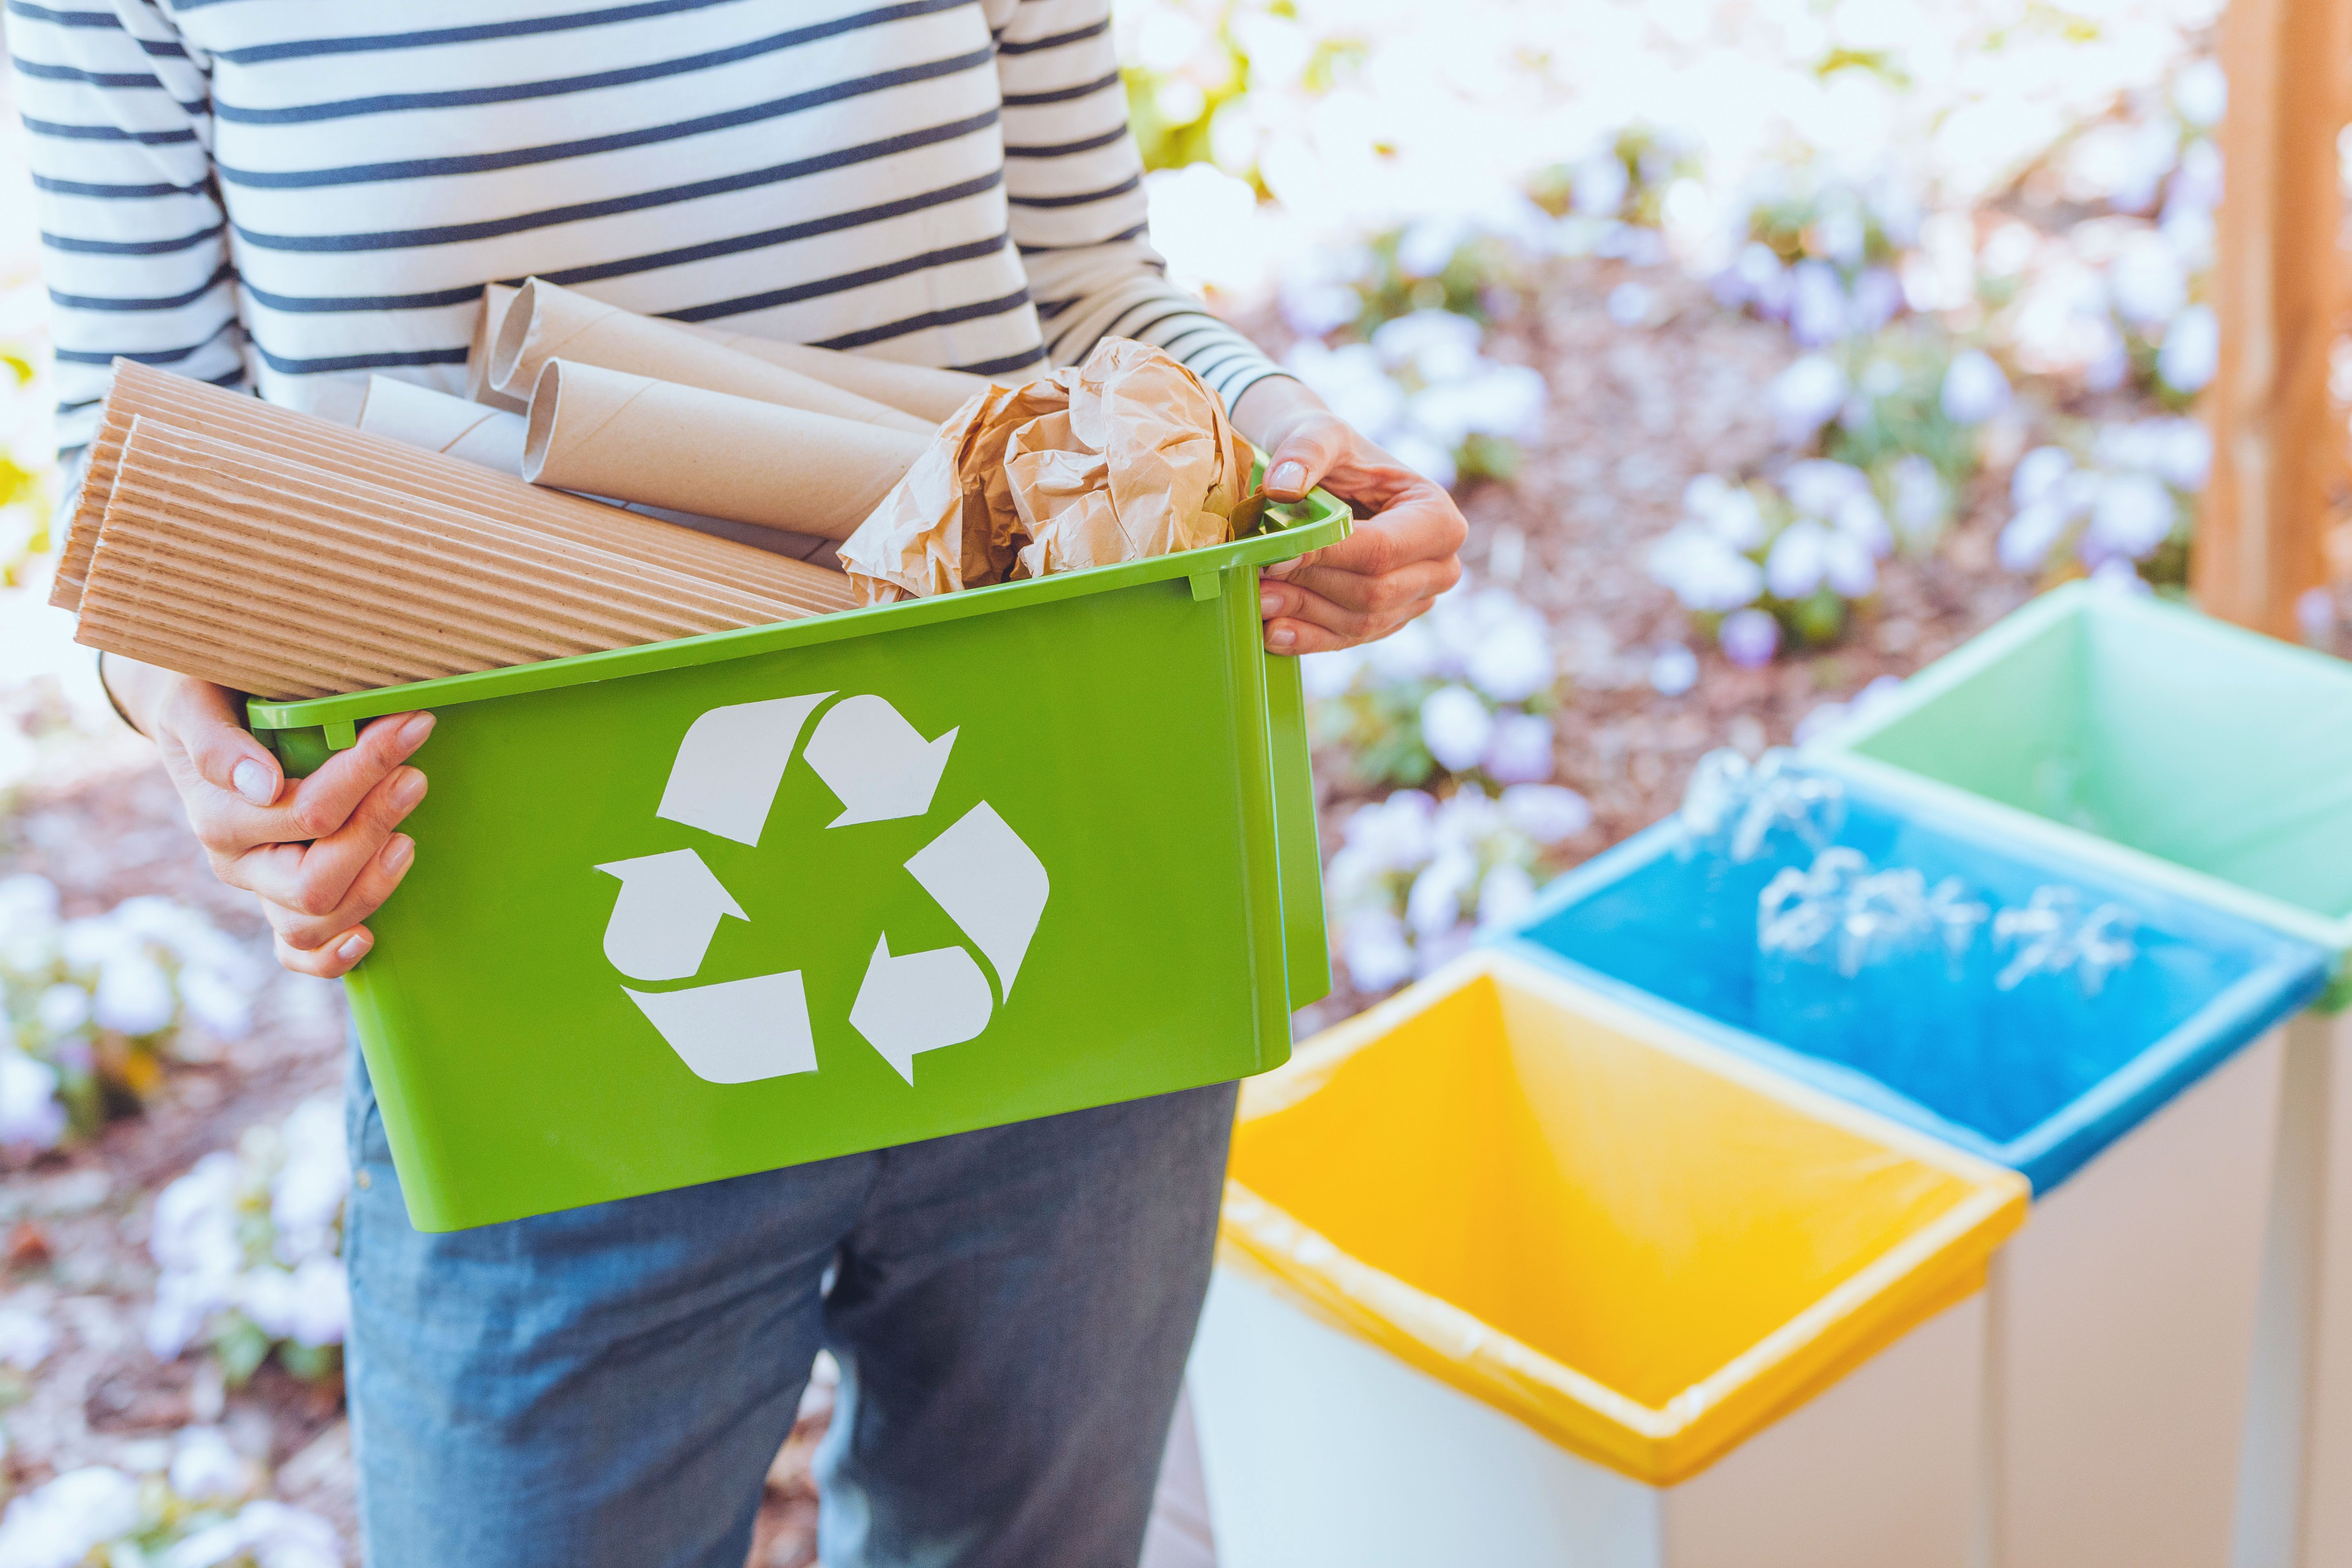 Recycling Symbols on Plastics - What Do Recycling Codes on Plastics Mean